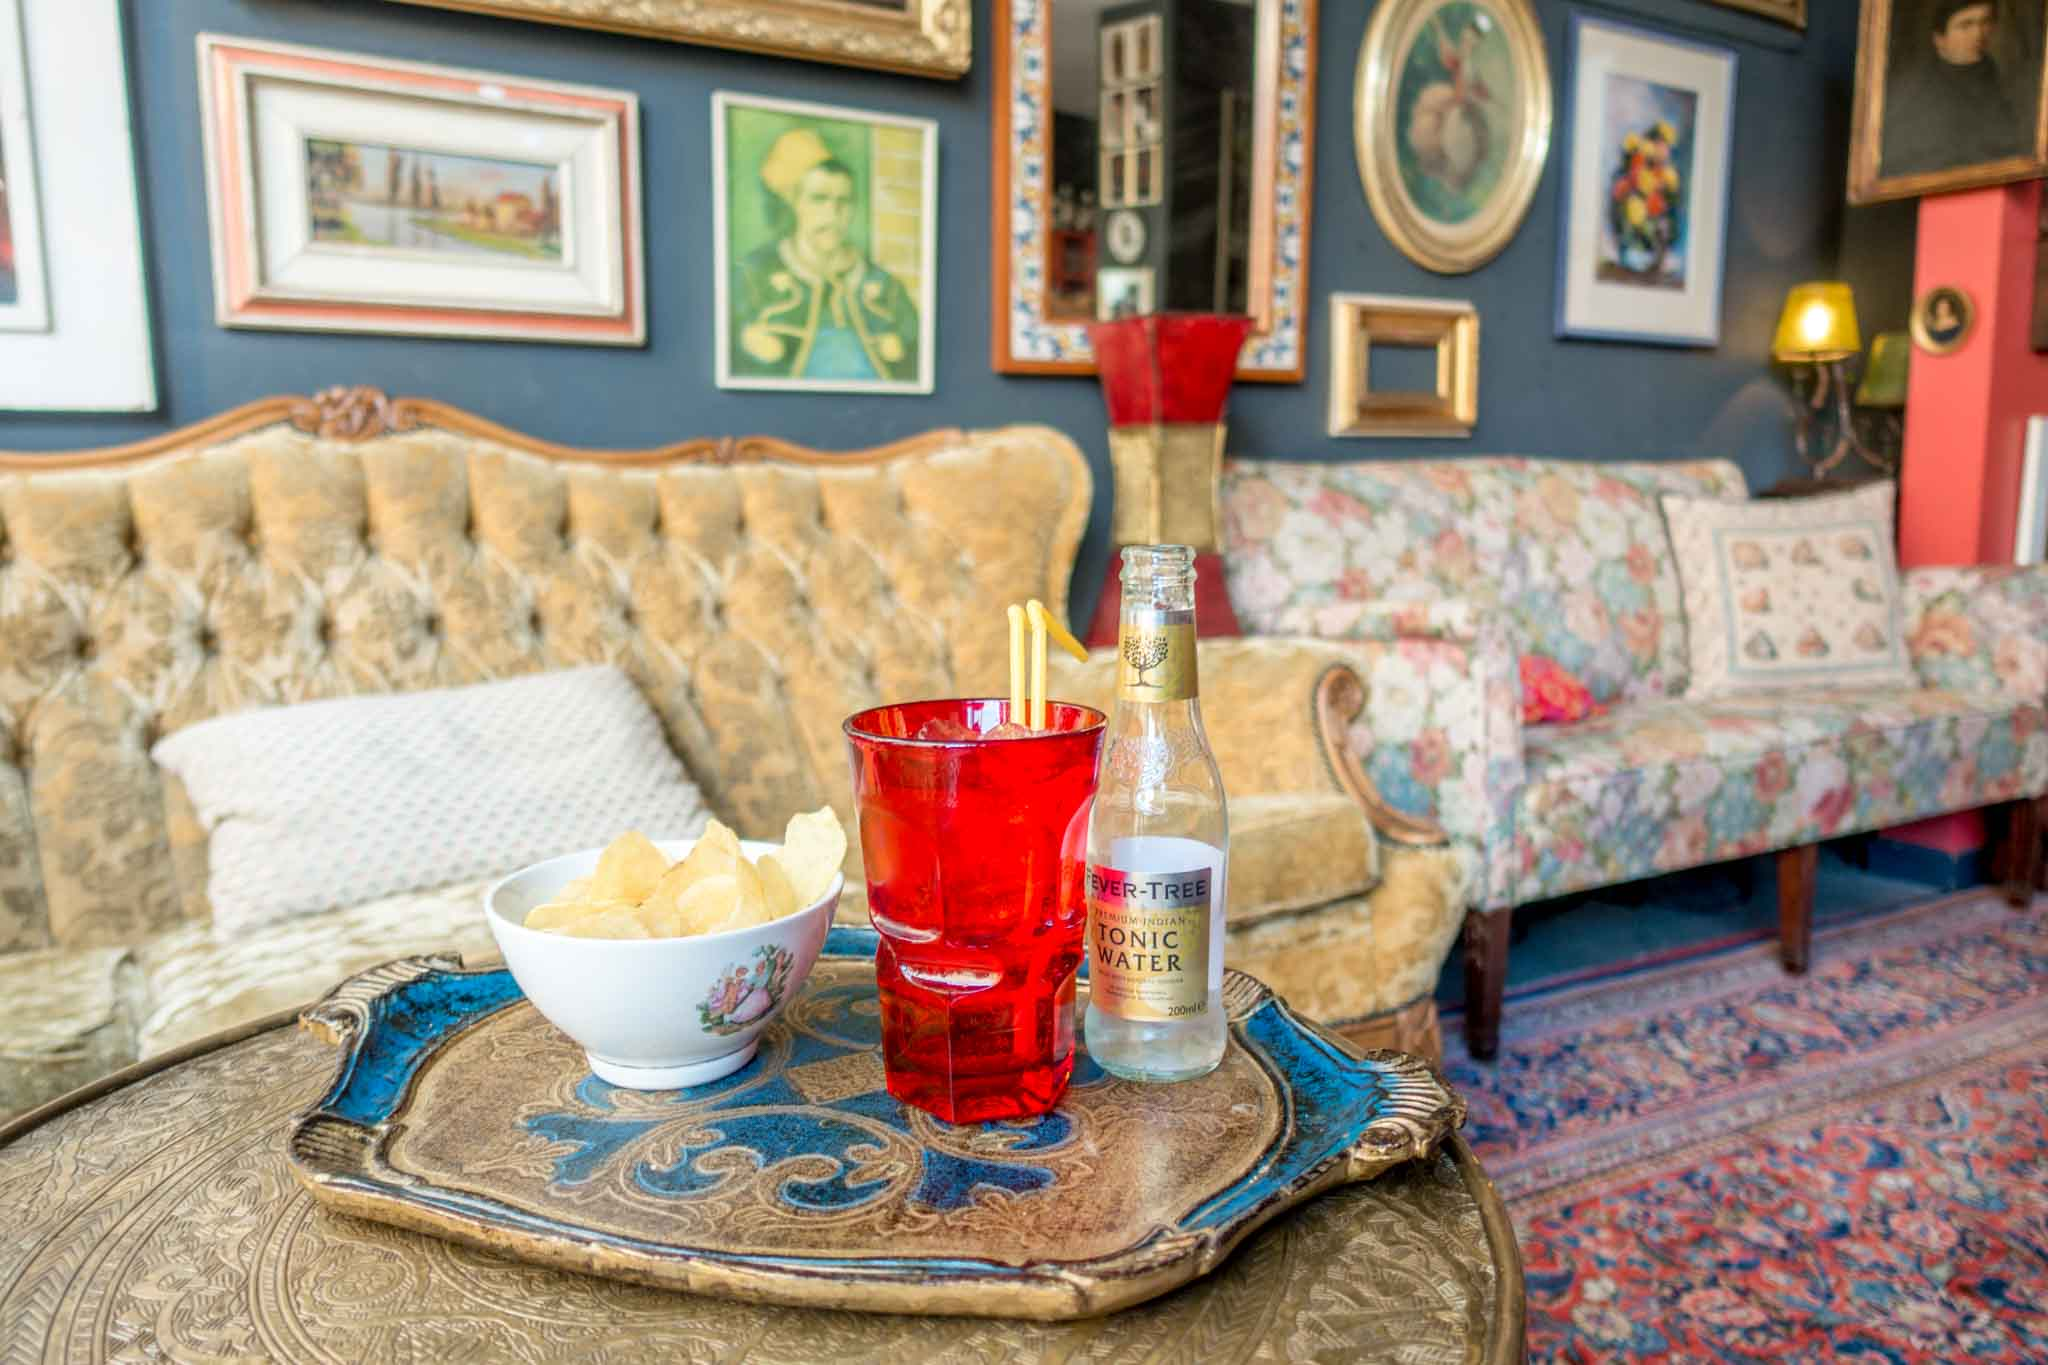 Cocktail and snacks in cafe with vintage furniture